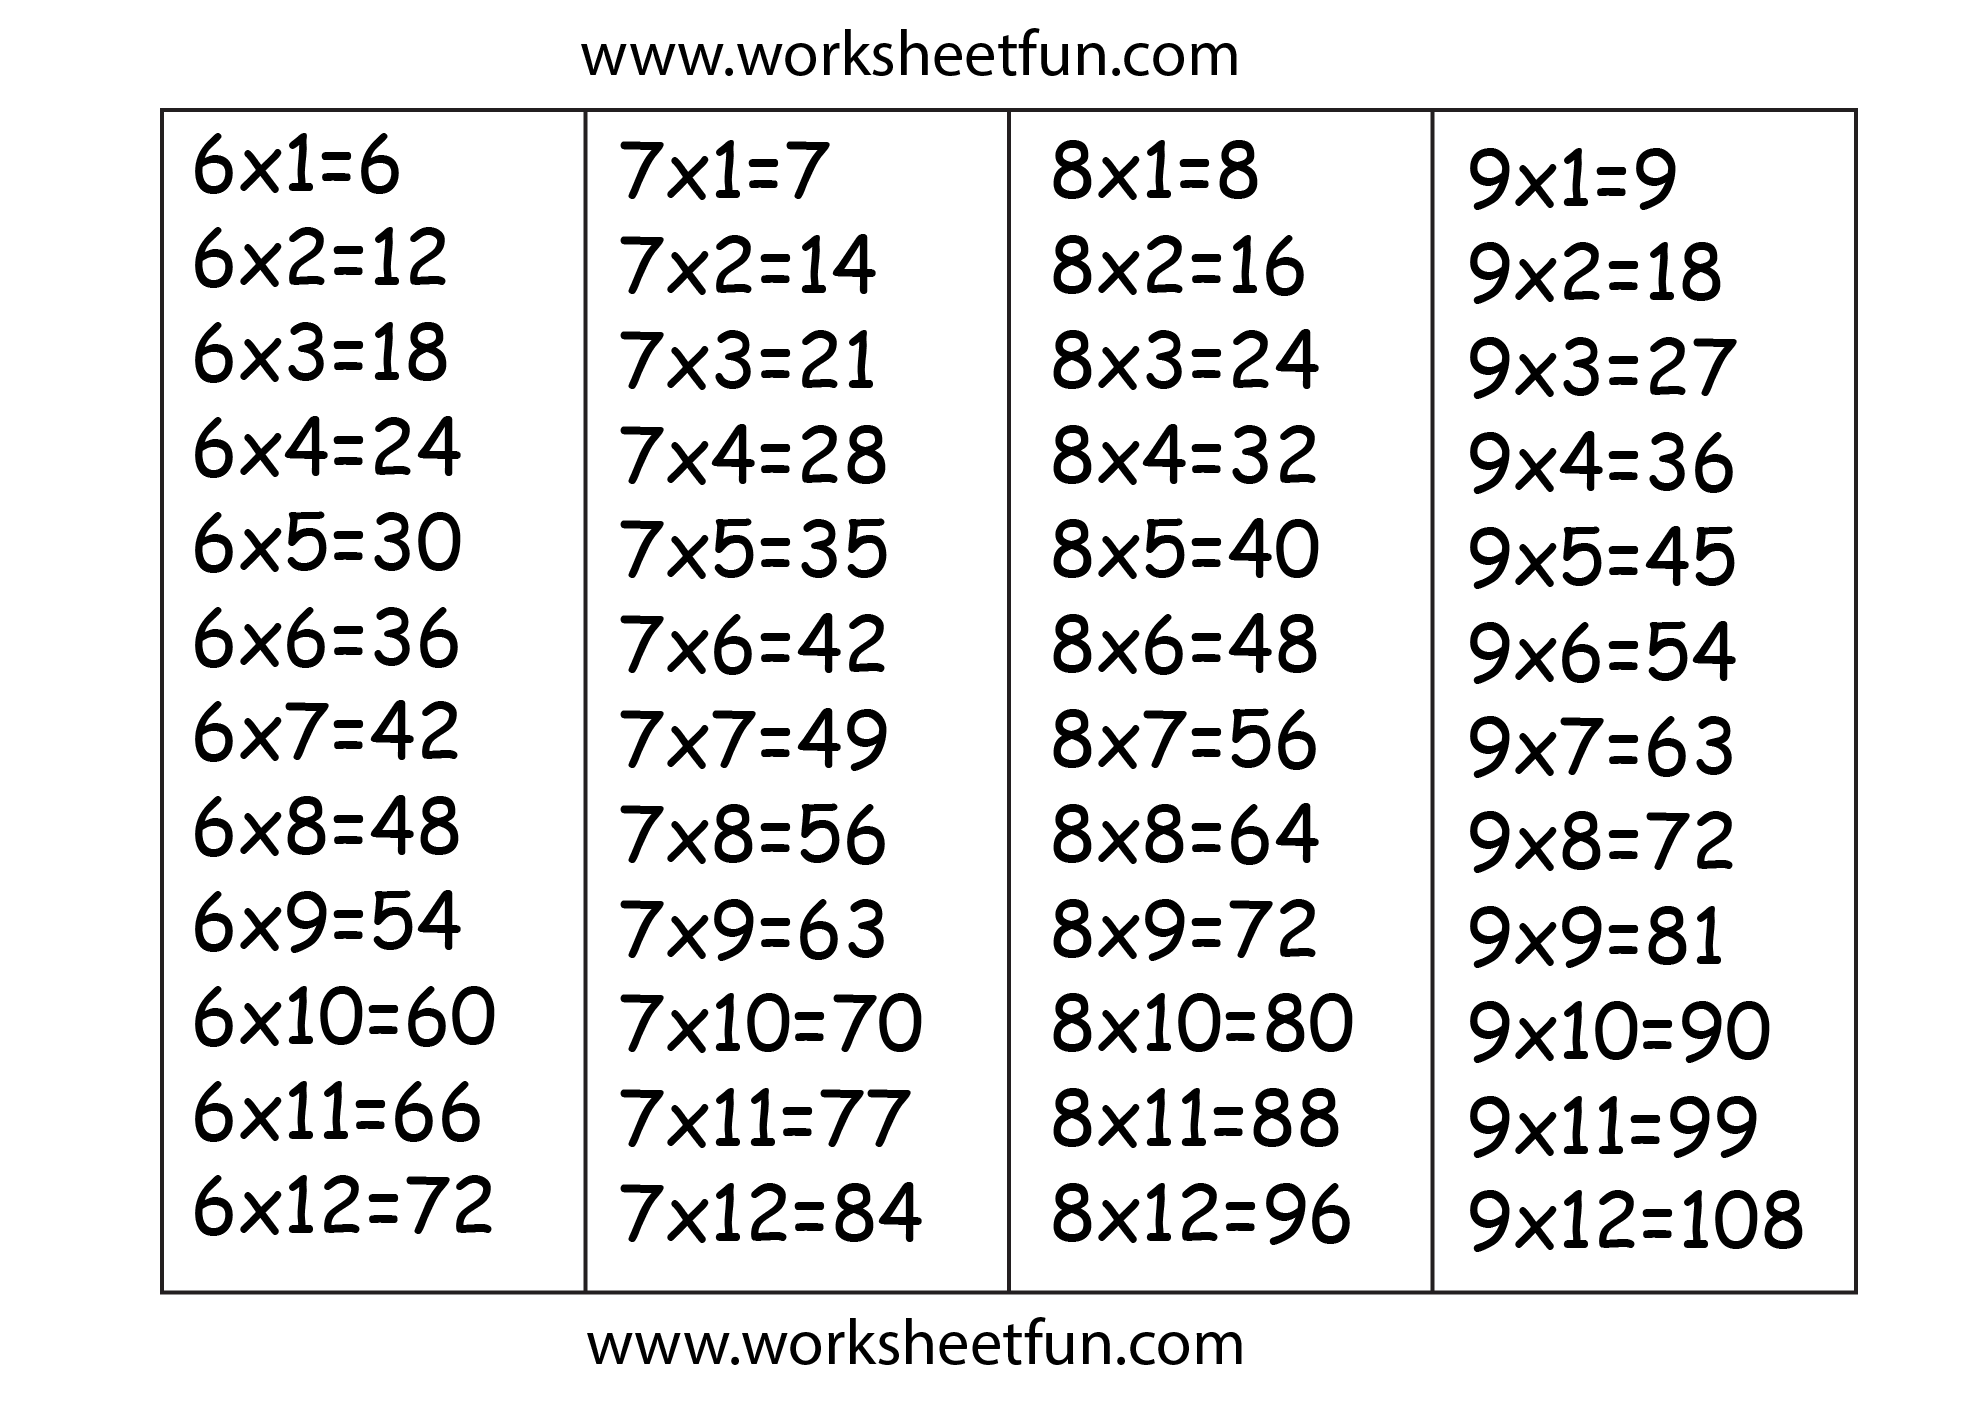 1X Tables Worksheets | Printable Worksheets And Activities